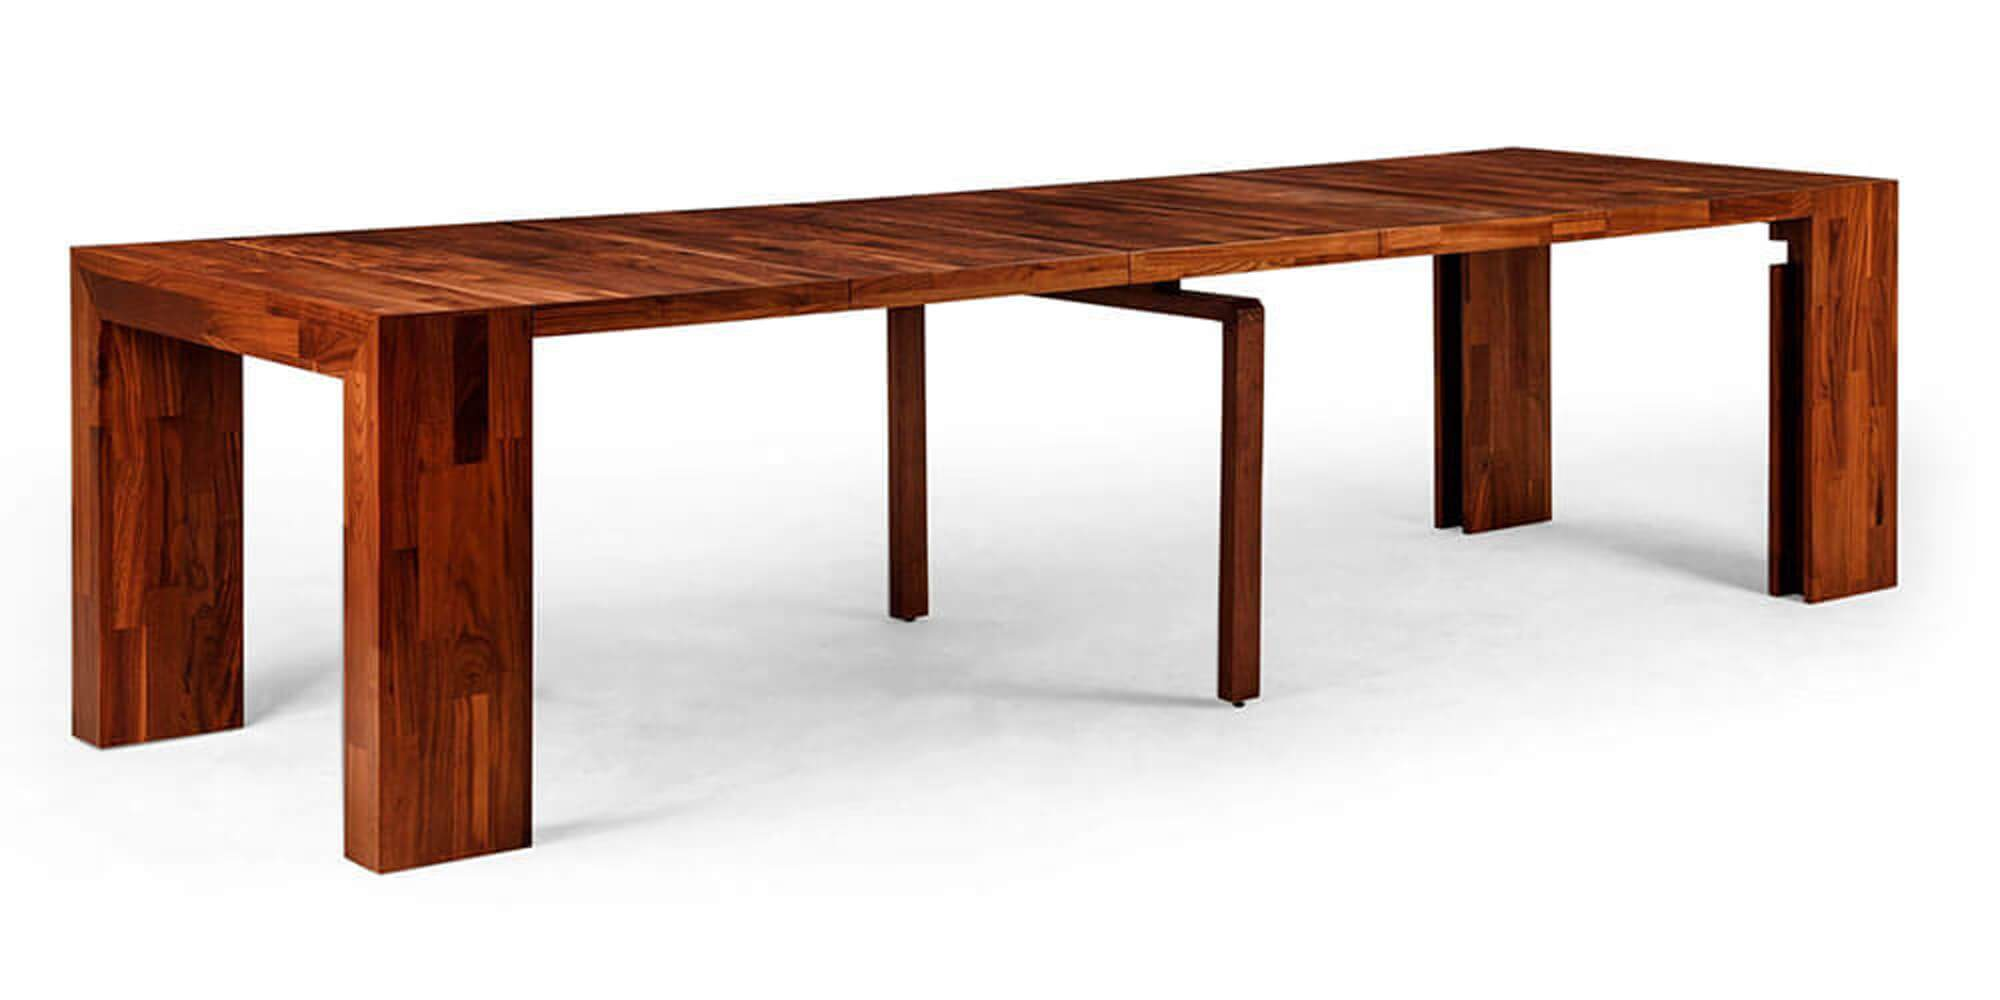 The Dining Set + Chestnut